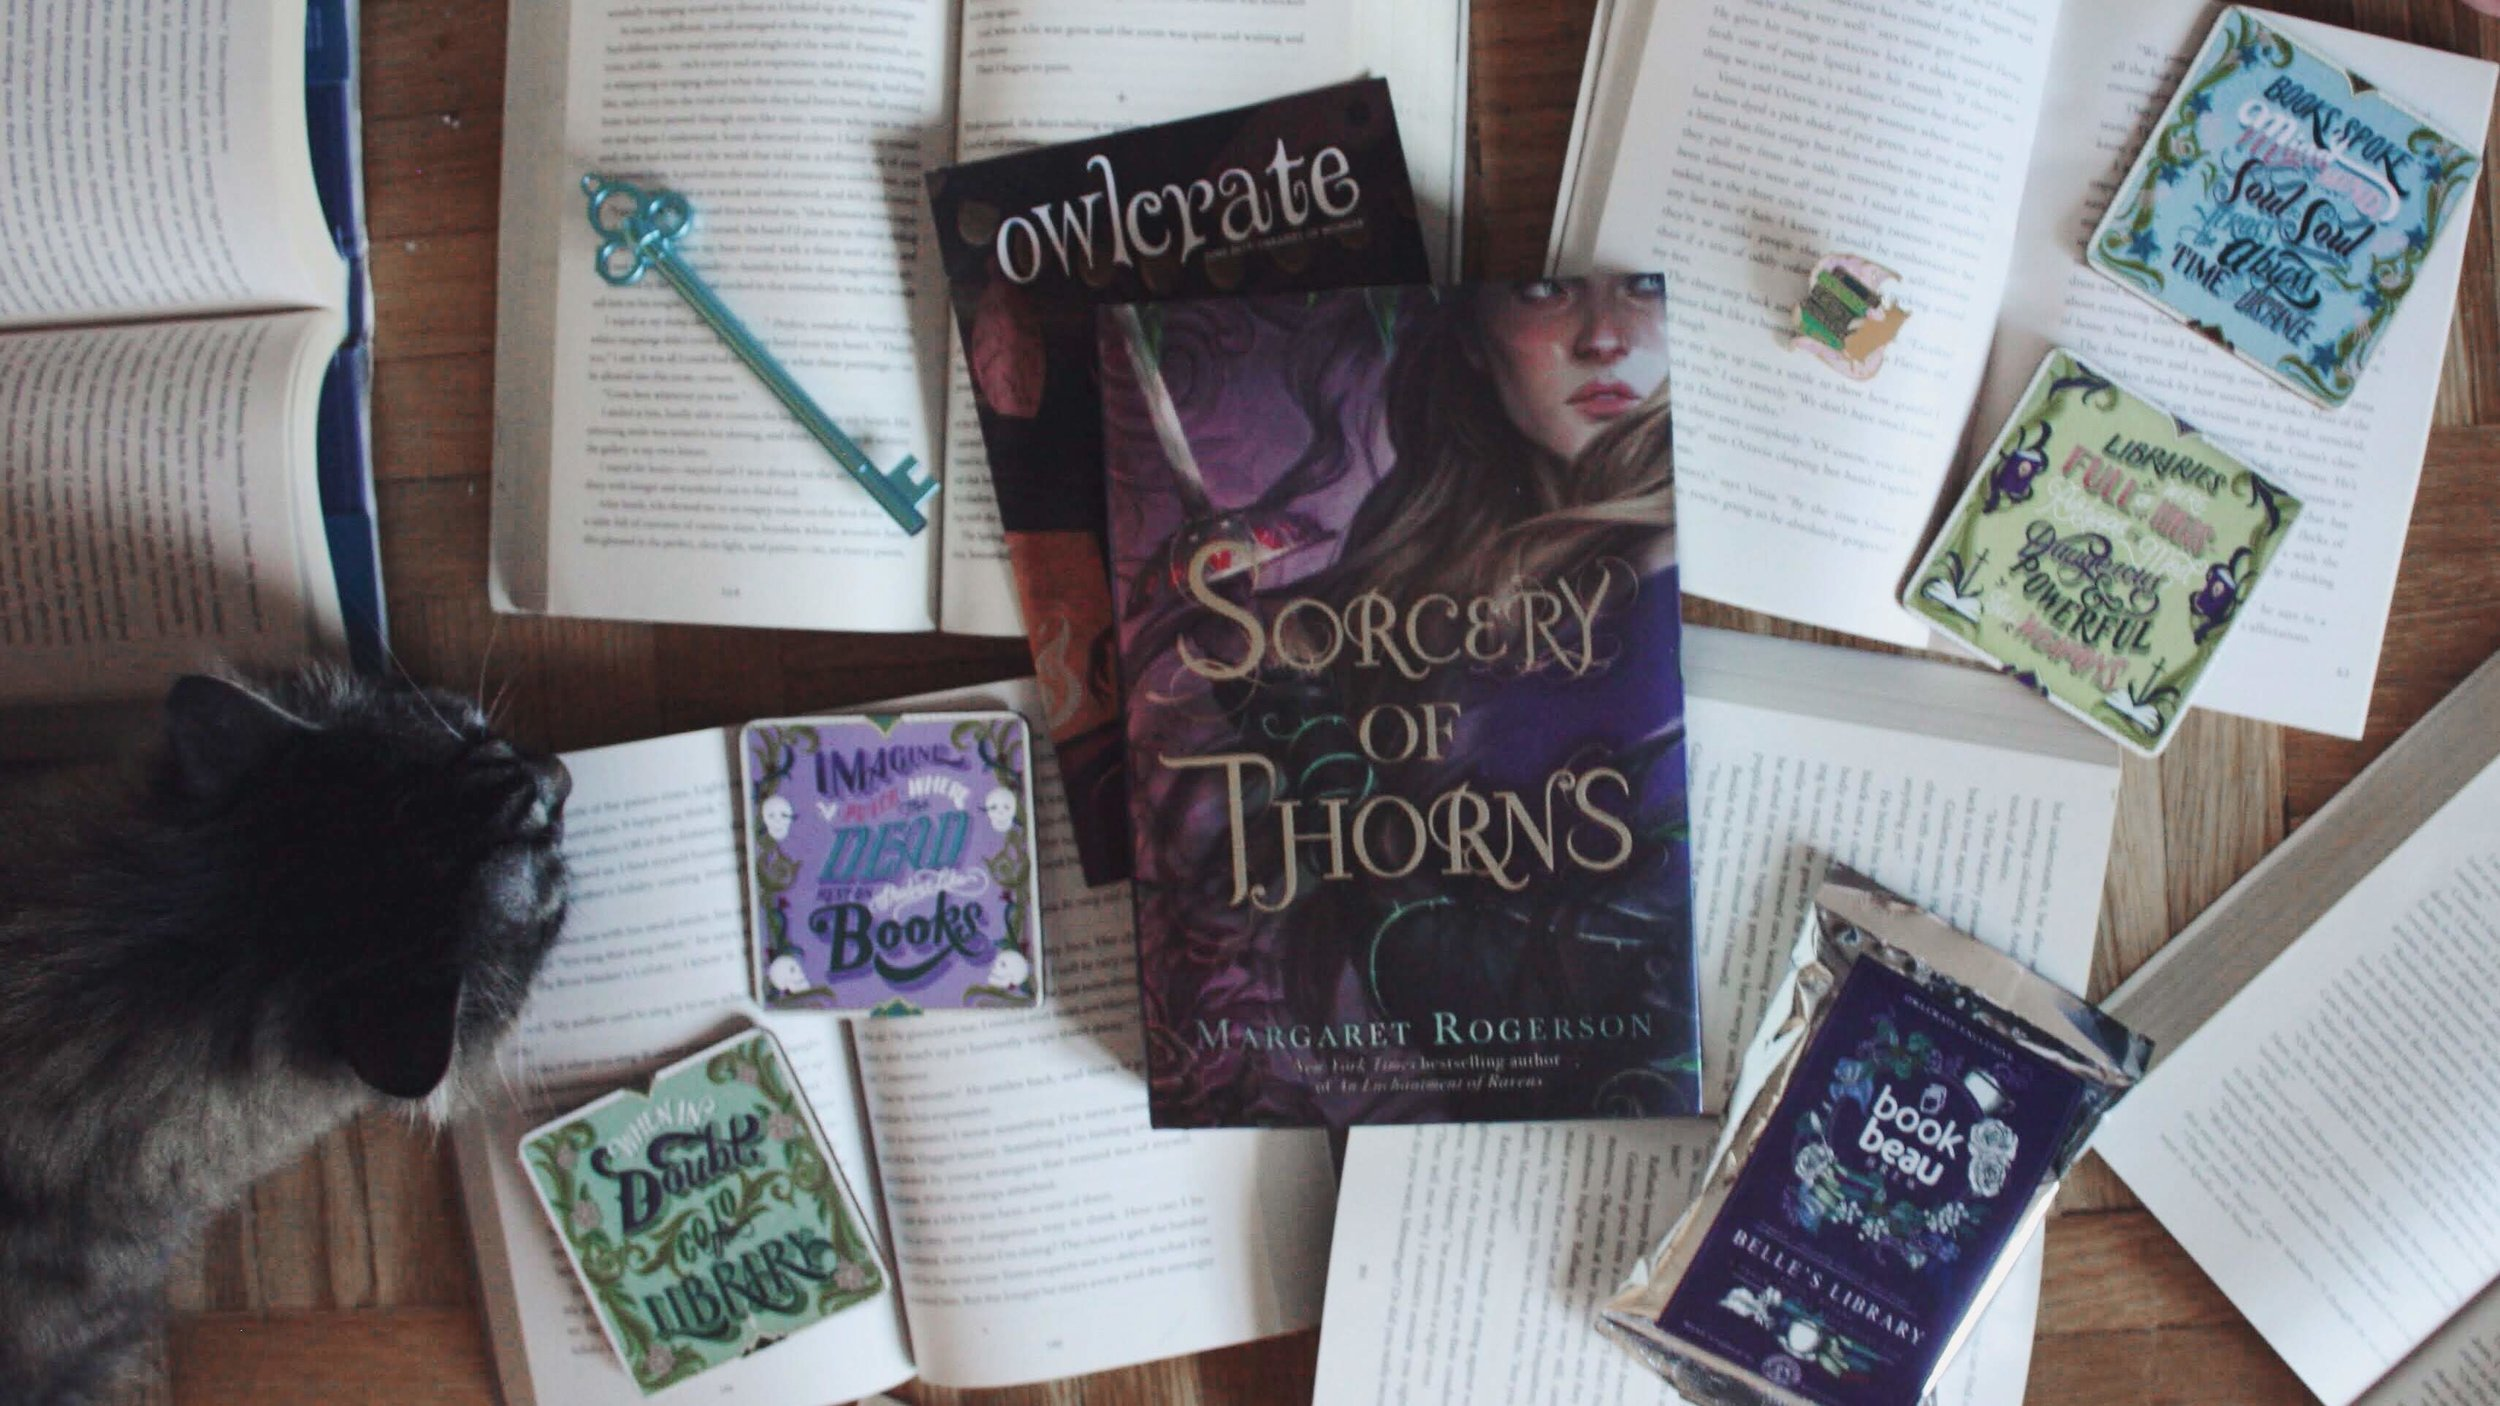 """Sorcery of Thorns"" and a few other of the items included in the June OwlCrate box. Sniffing on the left side is my cat, Irene."